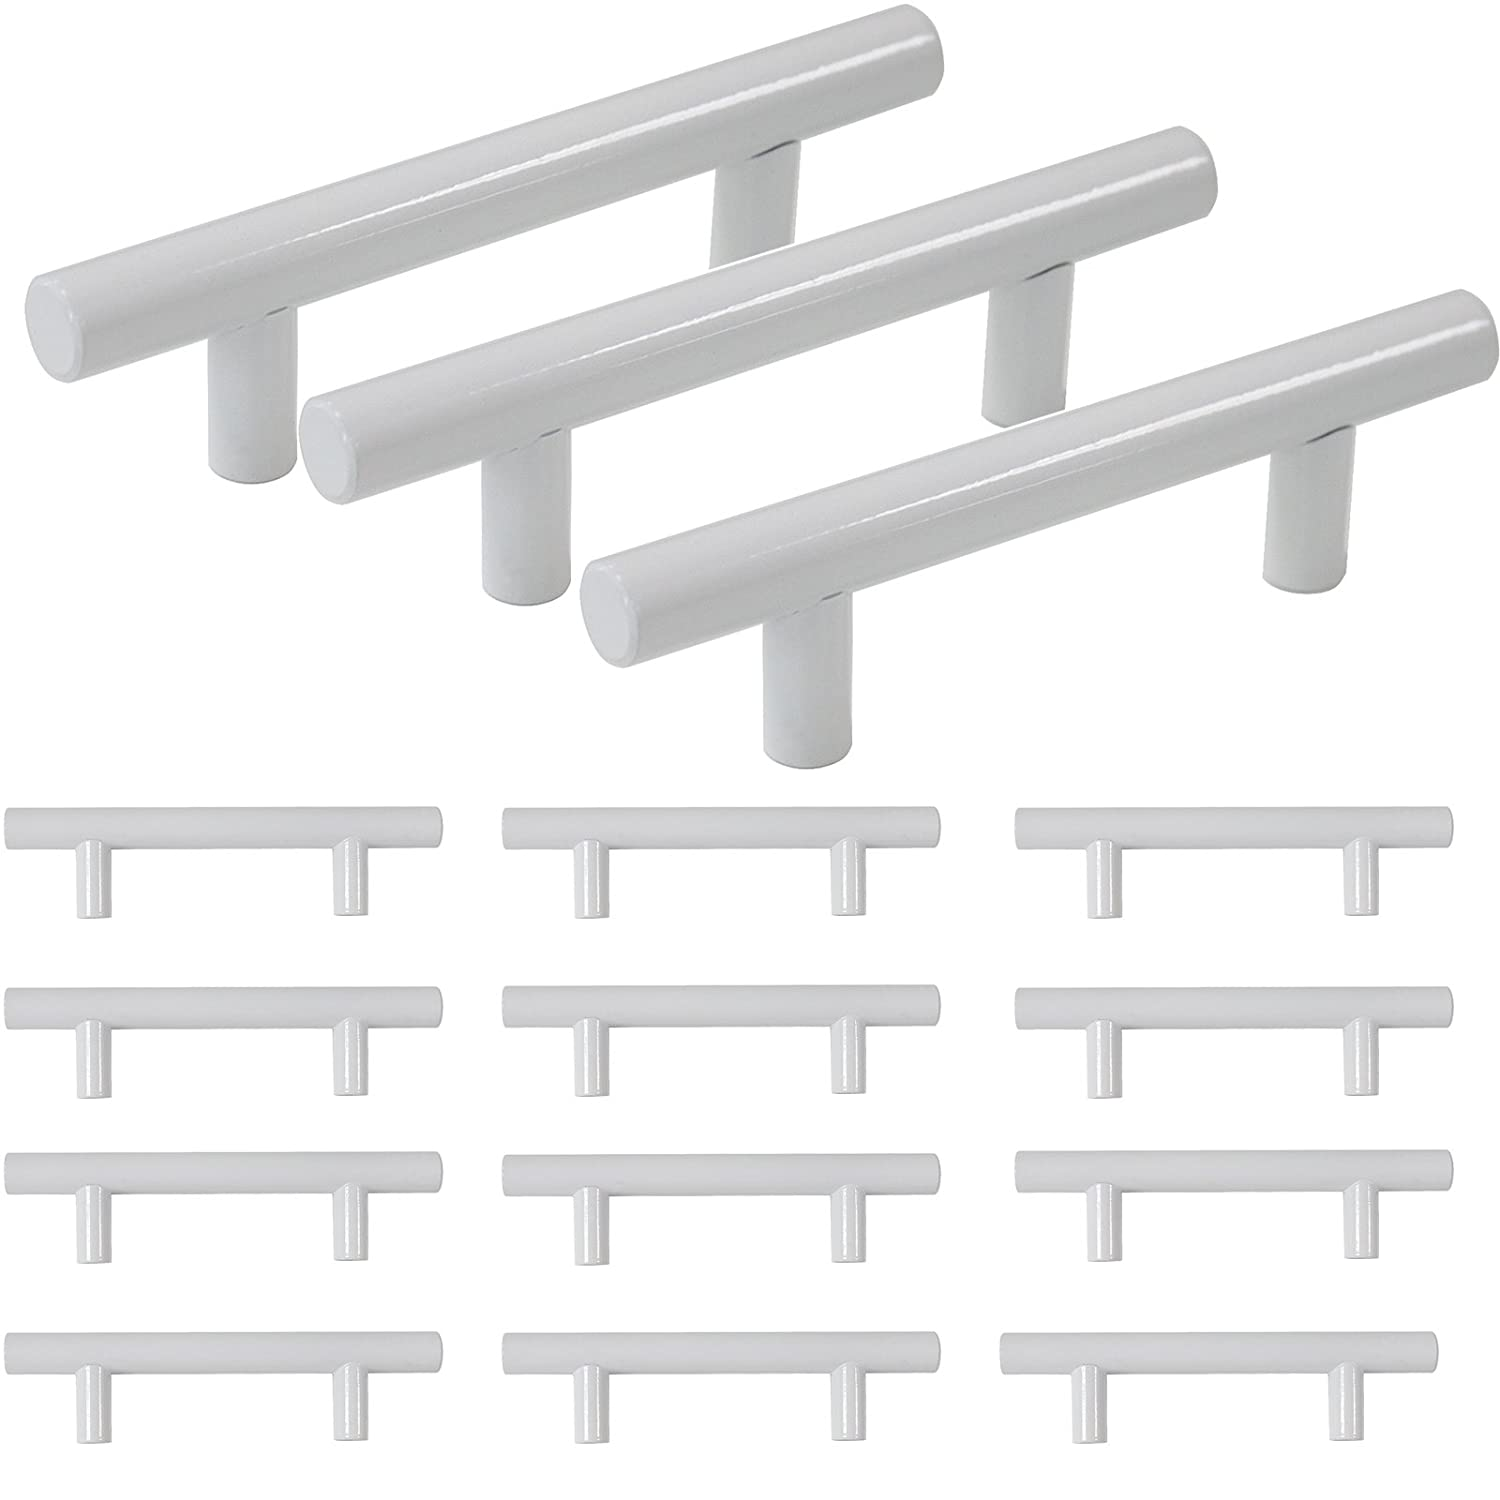 """Probrico 3"""" Hole Centers Modern White Kitchen Bathroom Cabinet Pulls Euro Round T Bar Handles Drawer Dress Pulls Stainless Steel Furniture Hardware-5"""" Overall Length(15Pack)"""